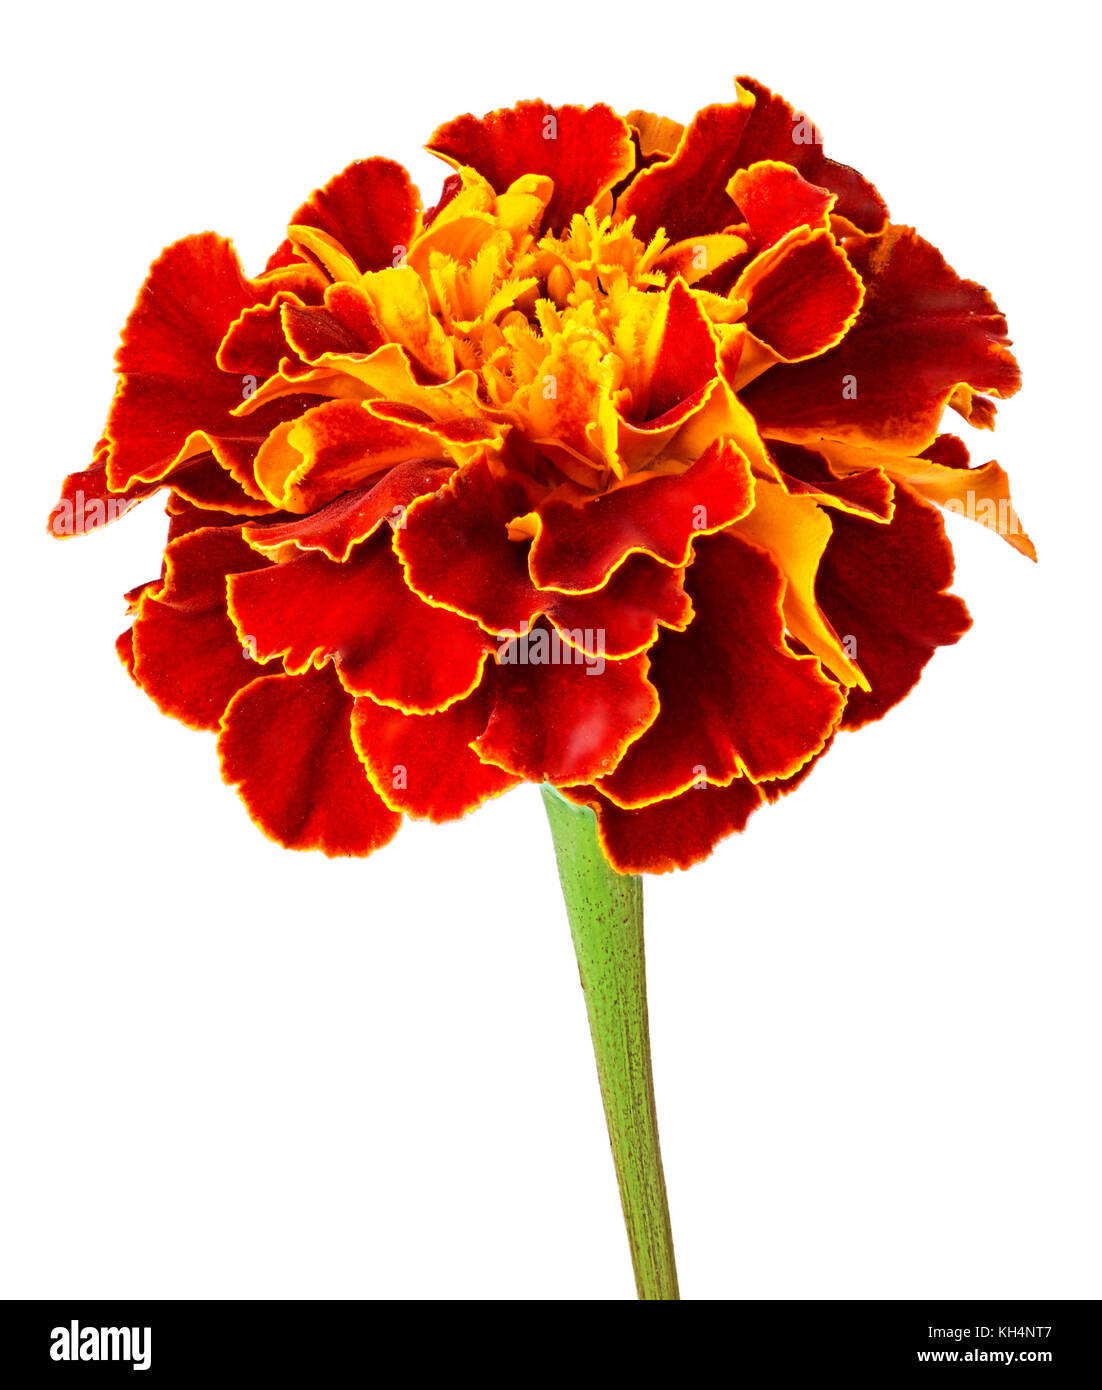 Marigold flower isolated on white background stock photos marigold marigold flower isolated on white background clipping path full depth of field mightylinksfo